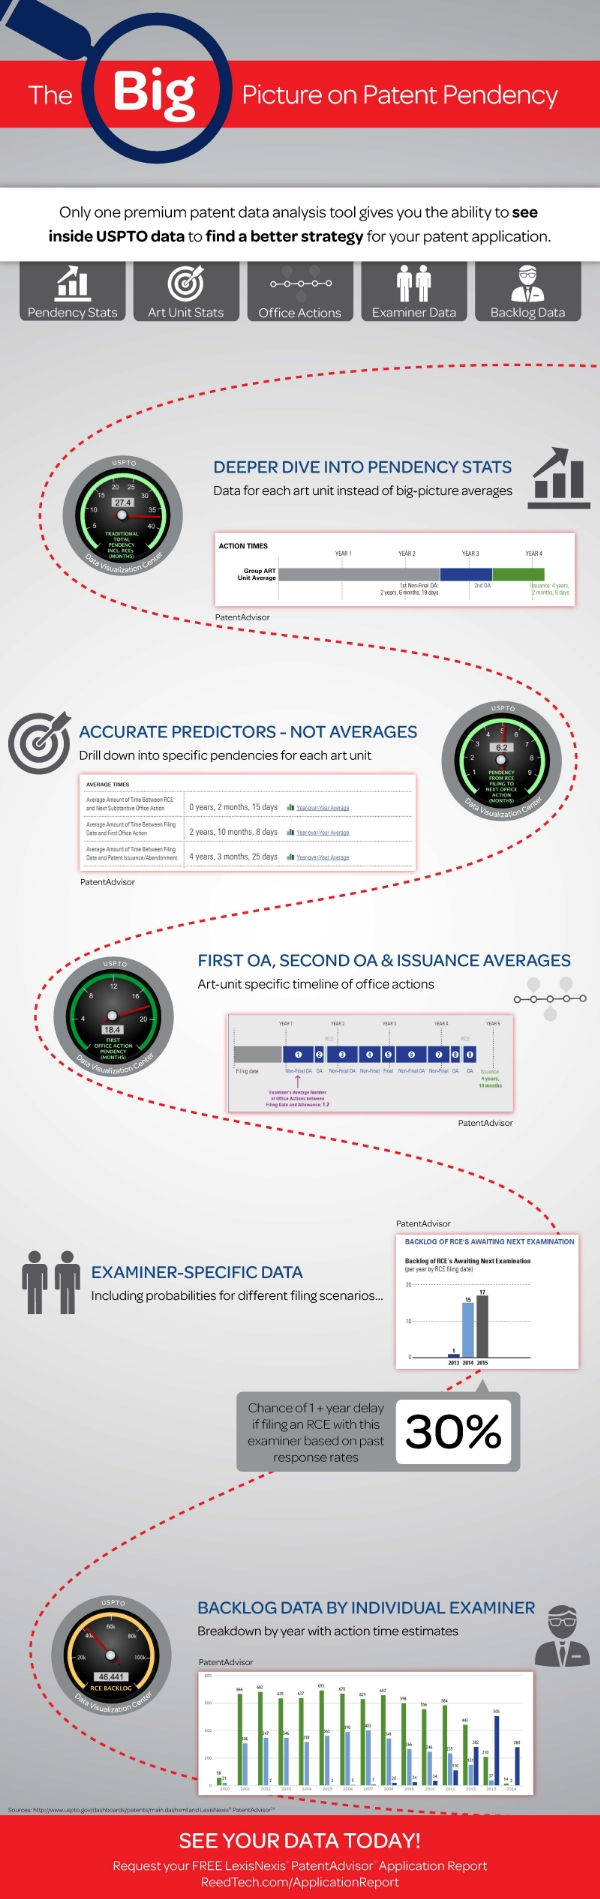 Patent_Pendency_Interactive_Infographic_031115-572989-edited